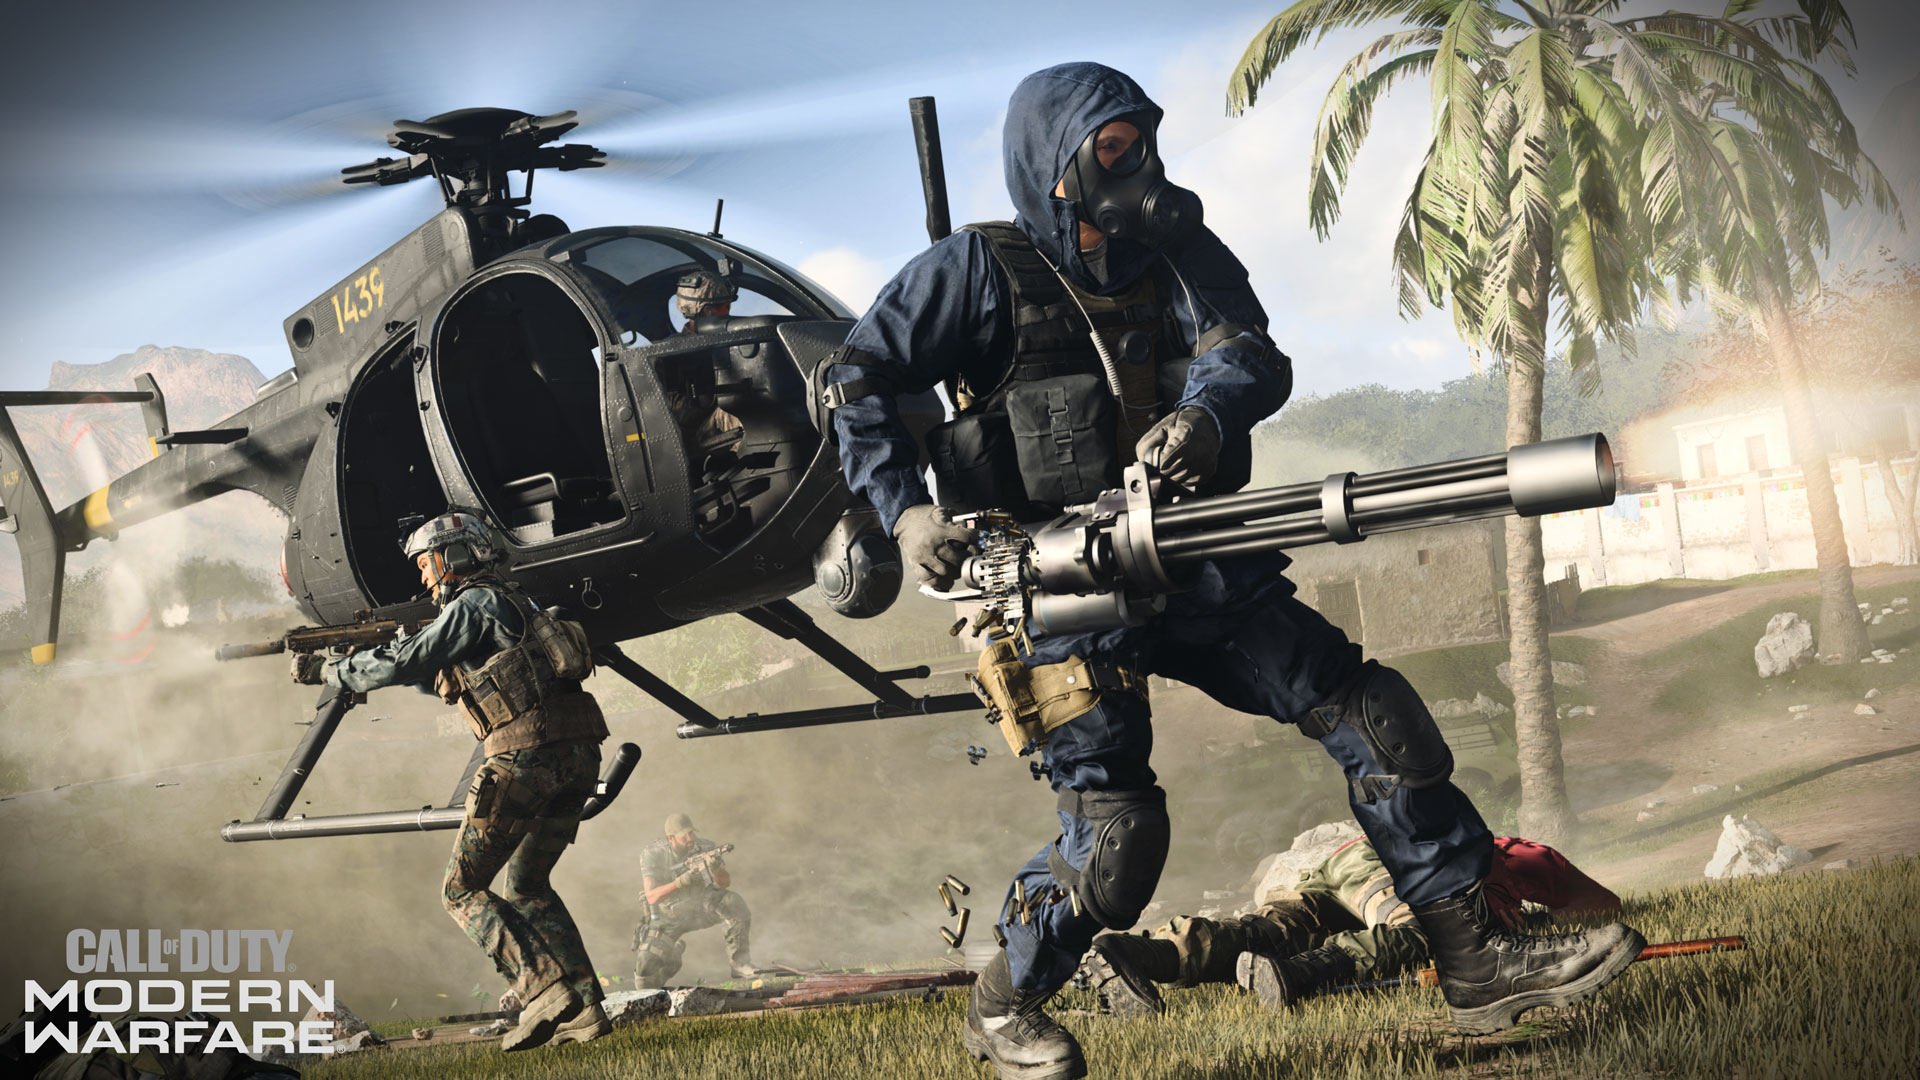 modern-warfare-new-image-nov-3.jpg